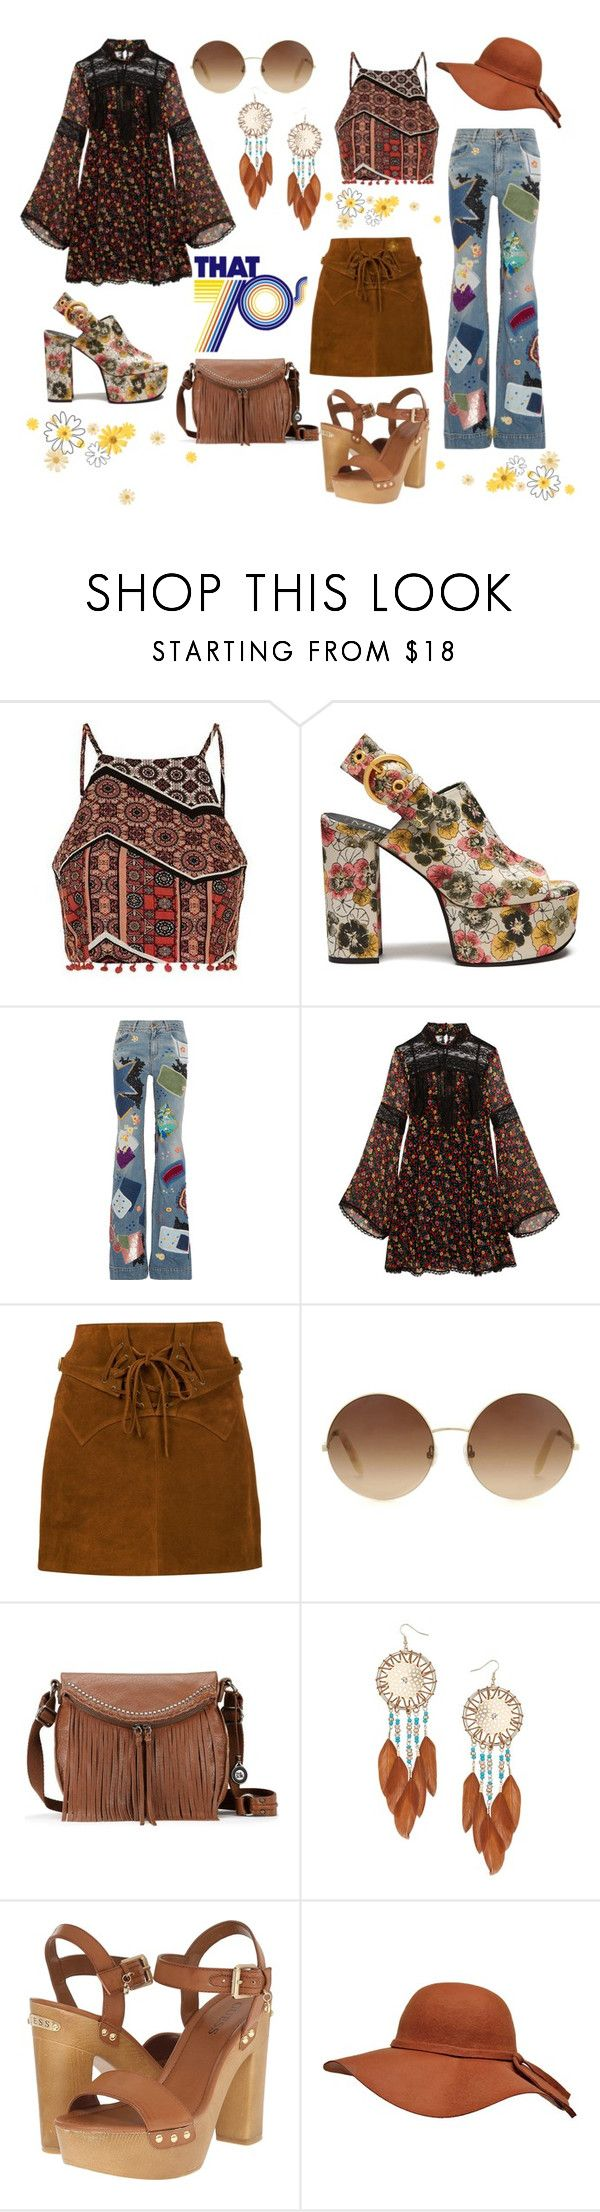 """""""70's festival inspired"""" by lizzynupa ❤ liked on Polyvore featuring Topshop, Mulberry, Roberto Cavalli, Anna Sui, Faith Connexion, Victoria Beckham, The Sak, Miss Selfridge and GUESS"""